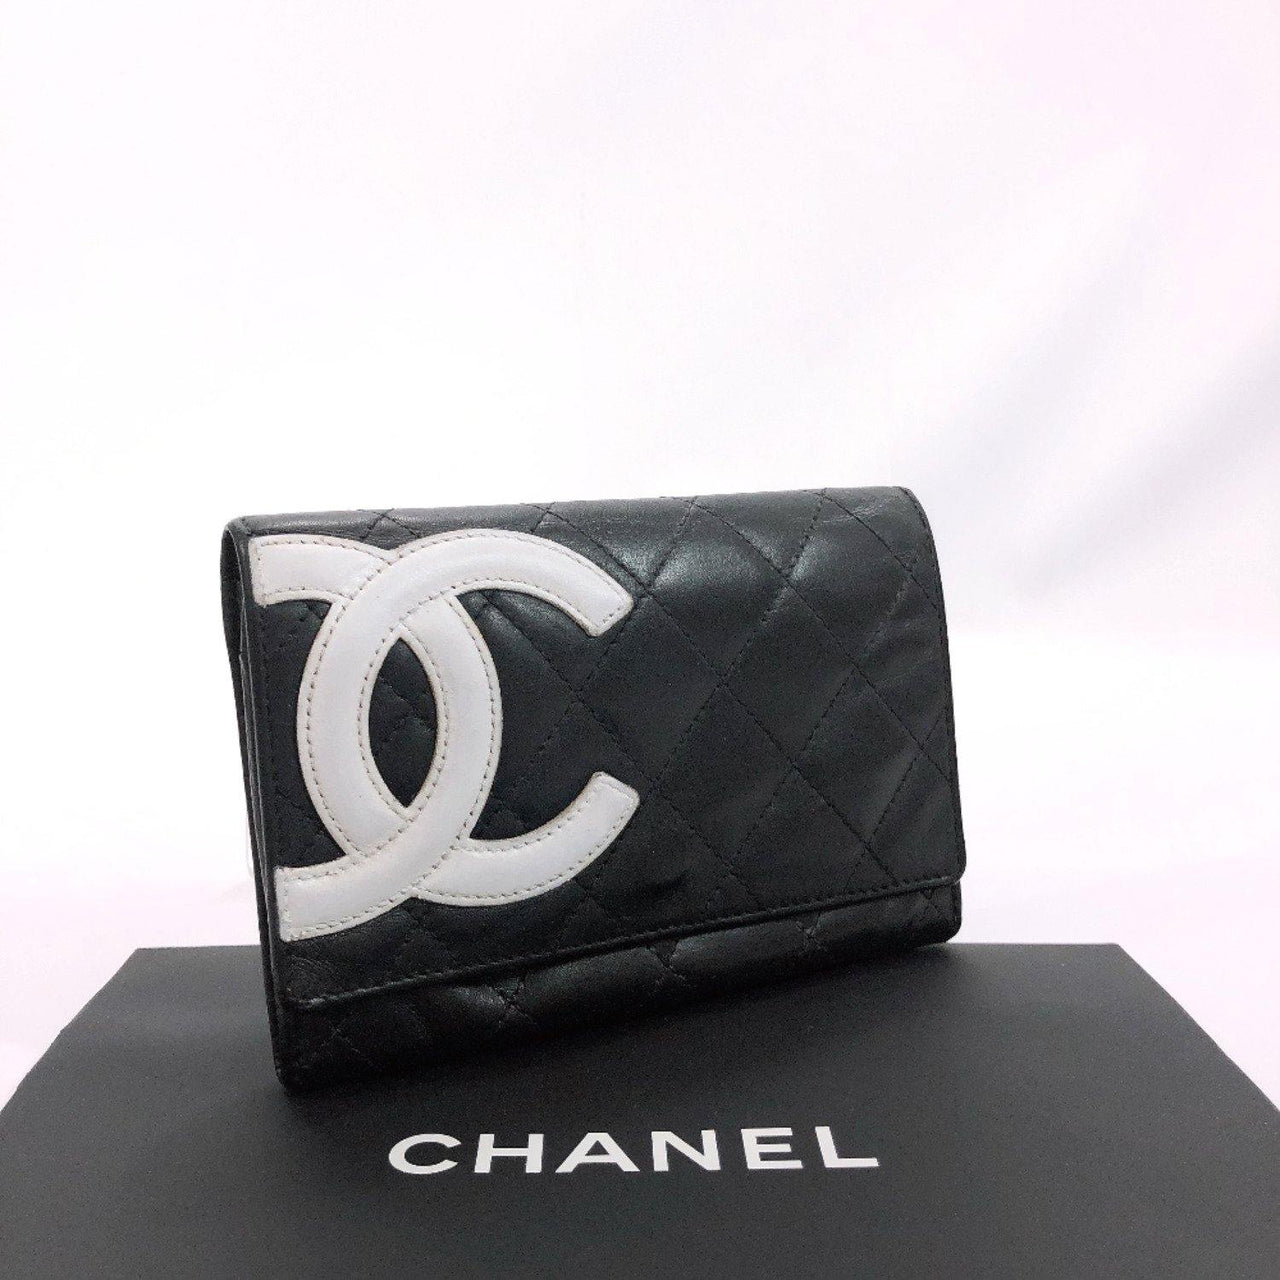 CHANEL coin purse Cambon line lambskin black Women Used - JP-BRANDS.com